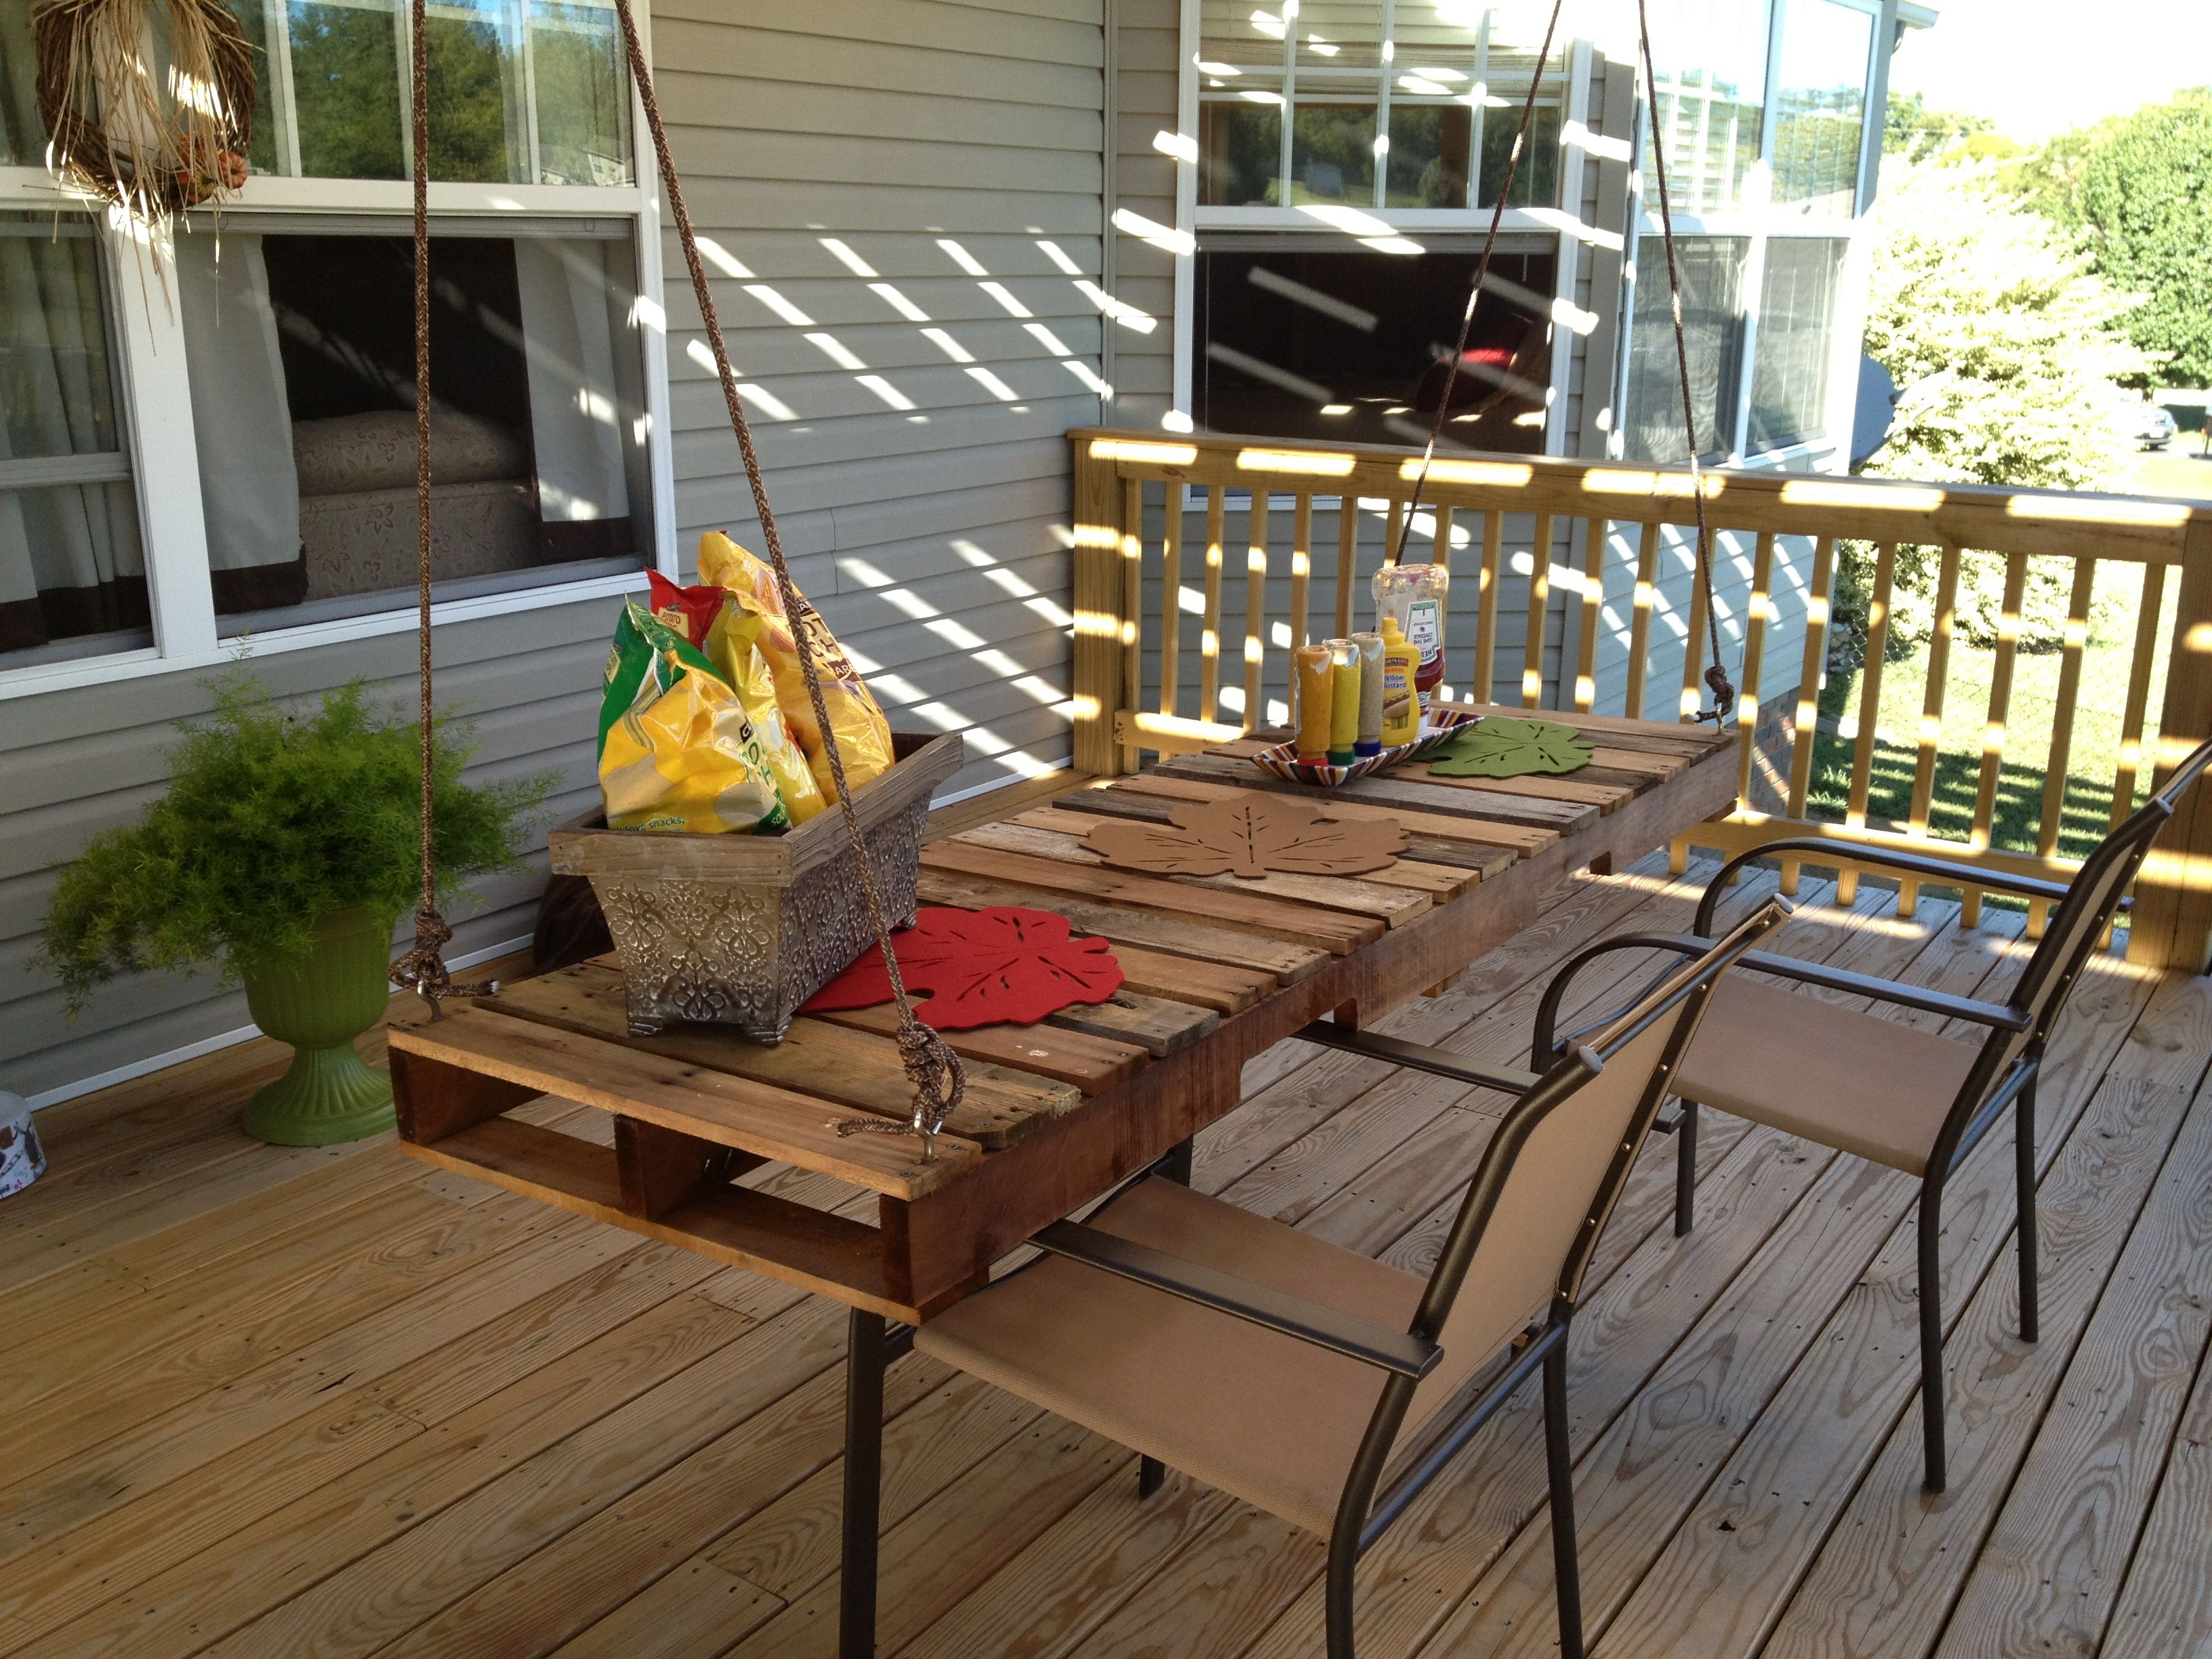 Floating Patio Table Made Of Pallet Wood